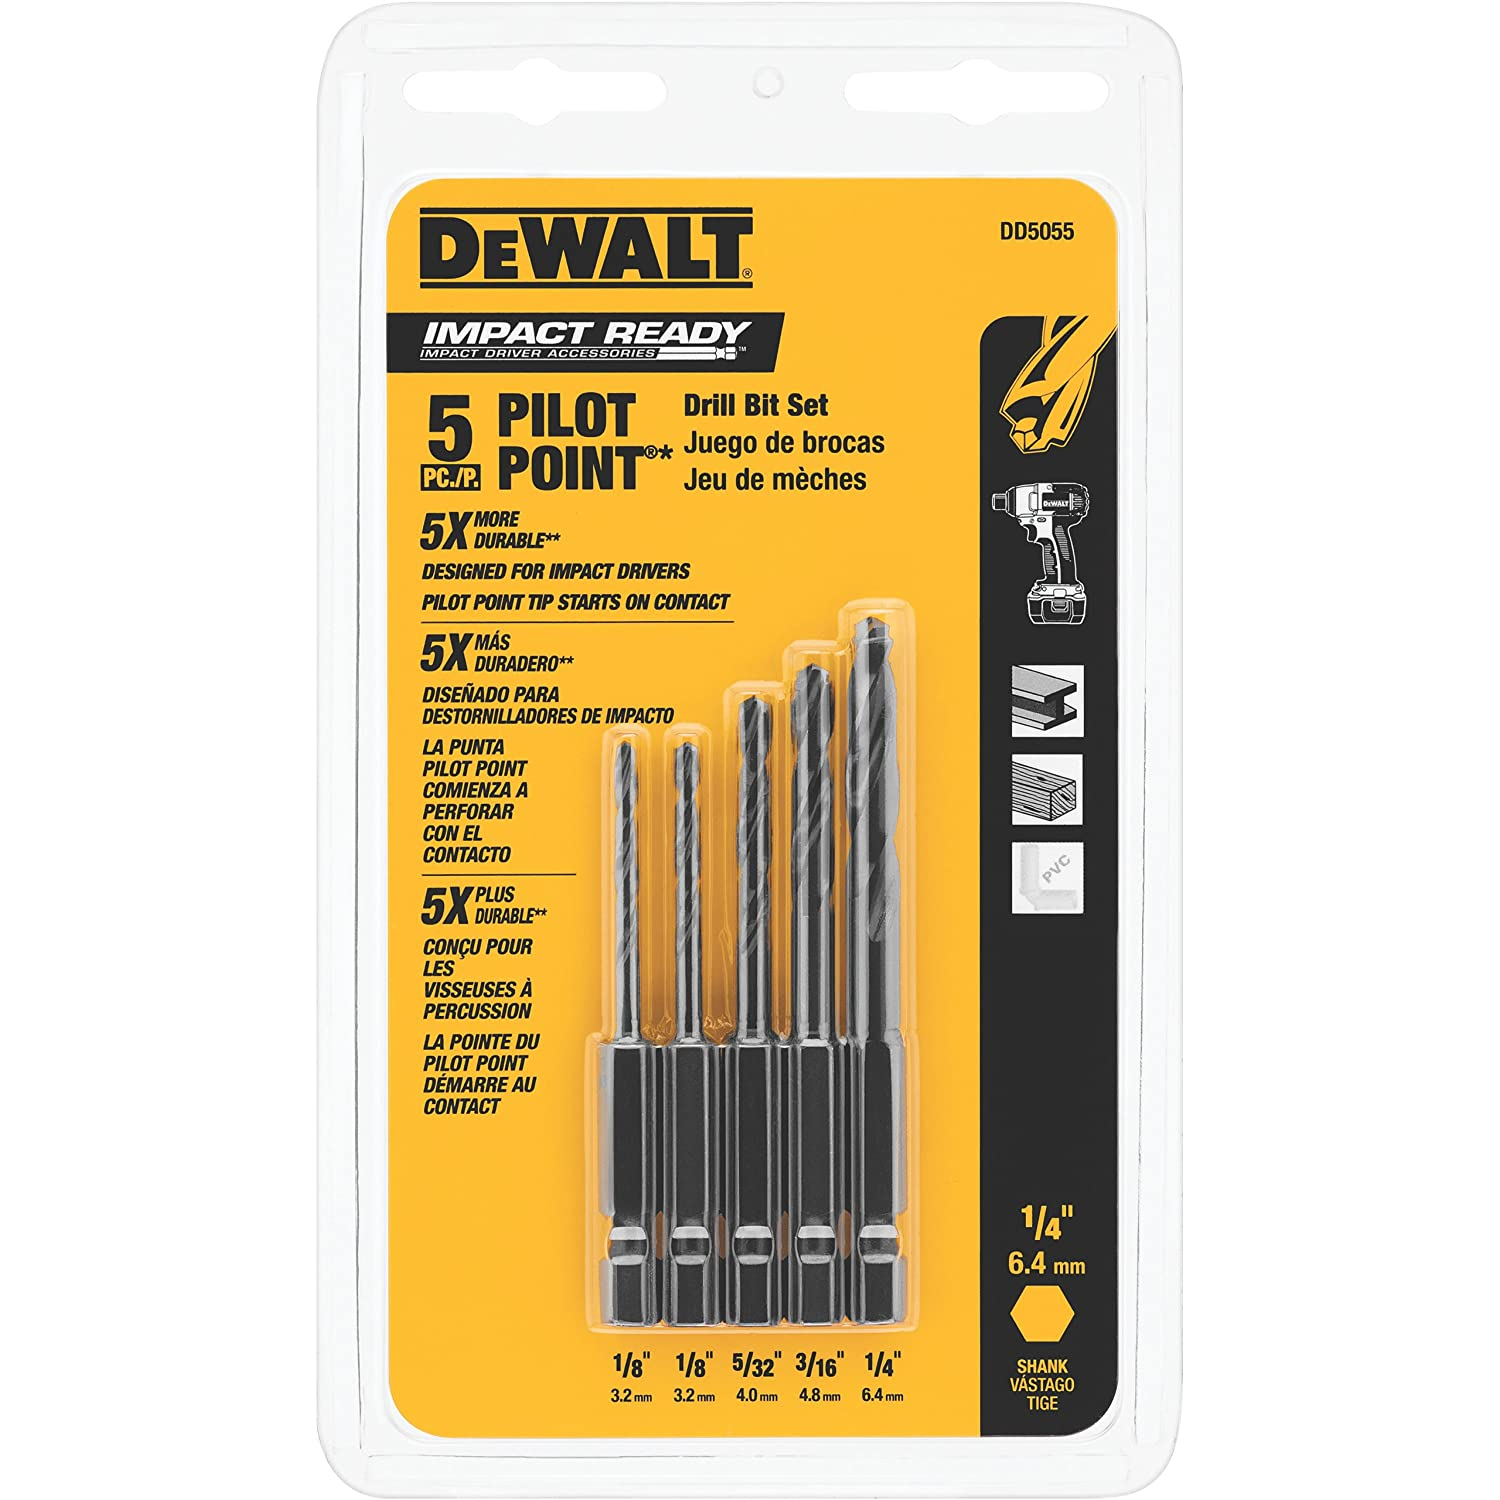 DEWALT DD5055 IMPACT READY Drilling Set, 5-Piece - Jobber Drill Bits - Amazon.com